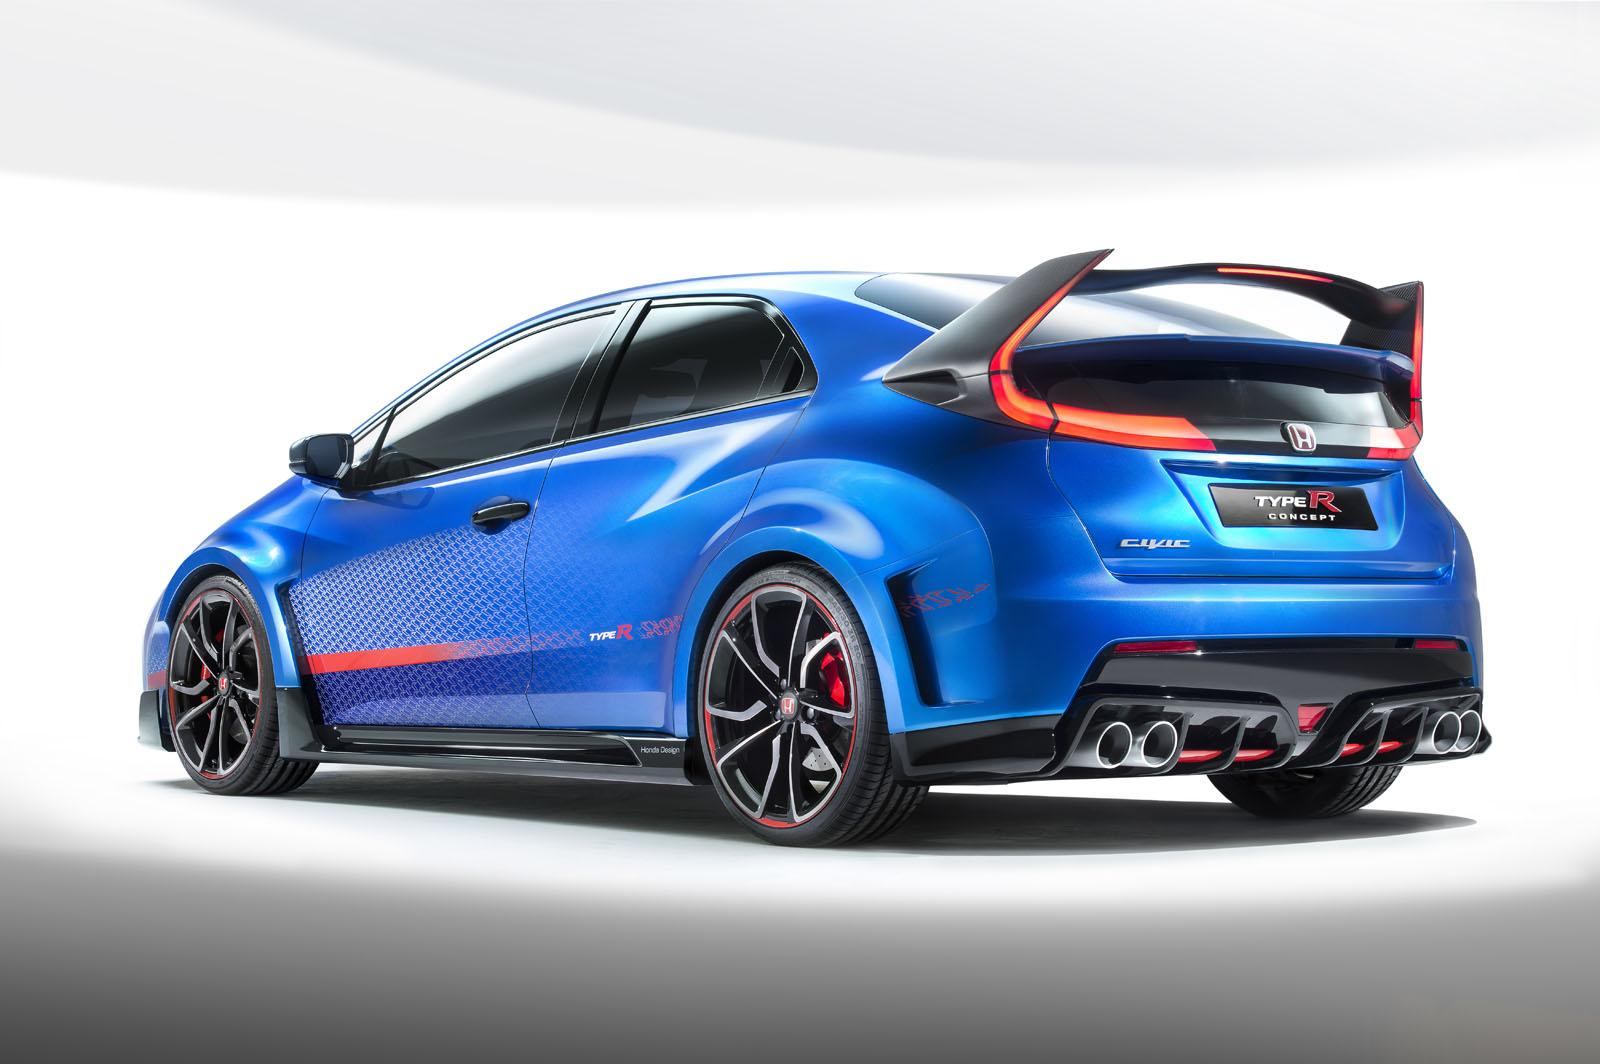 2015 honda civic type r price engine 0 60 for Buy honda civic type r